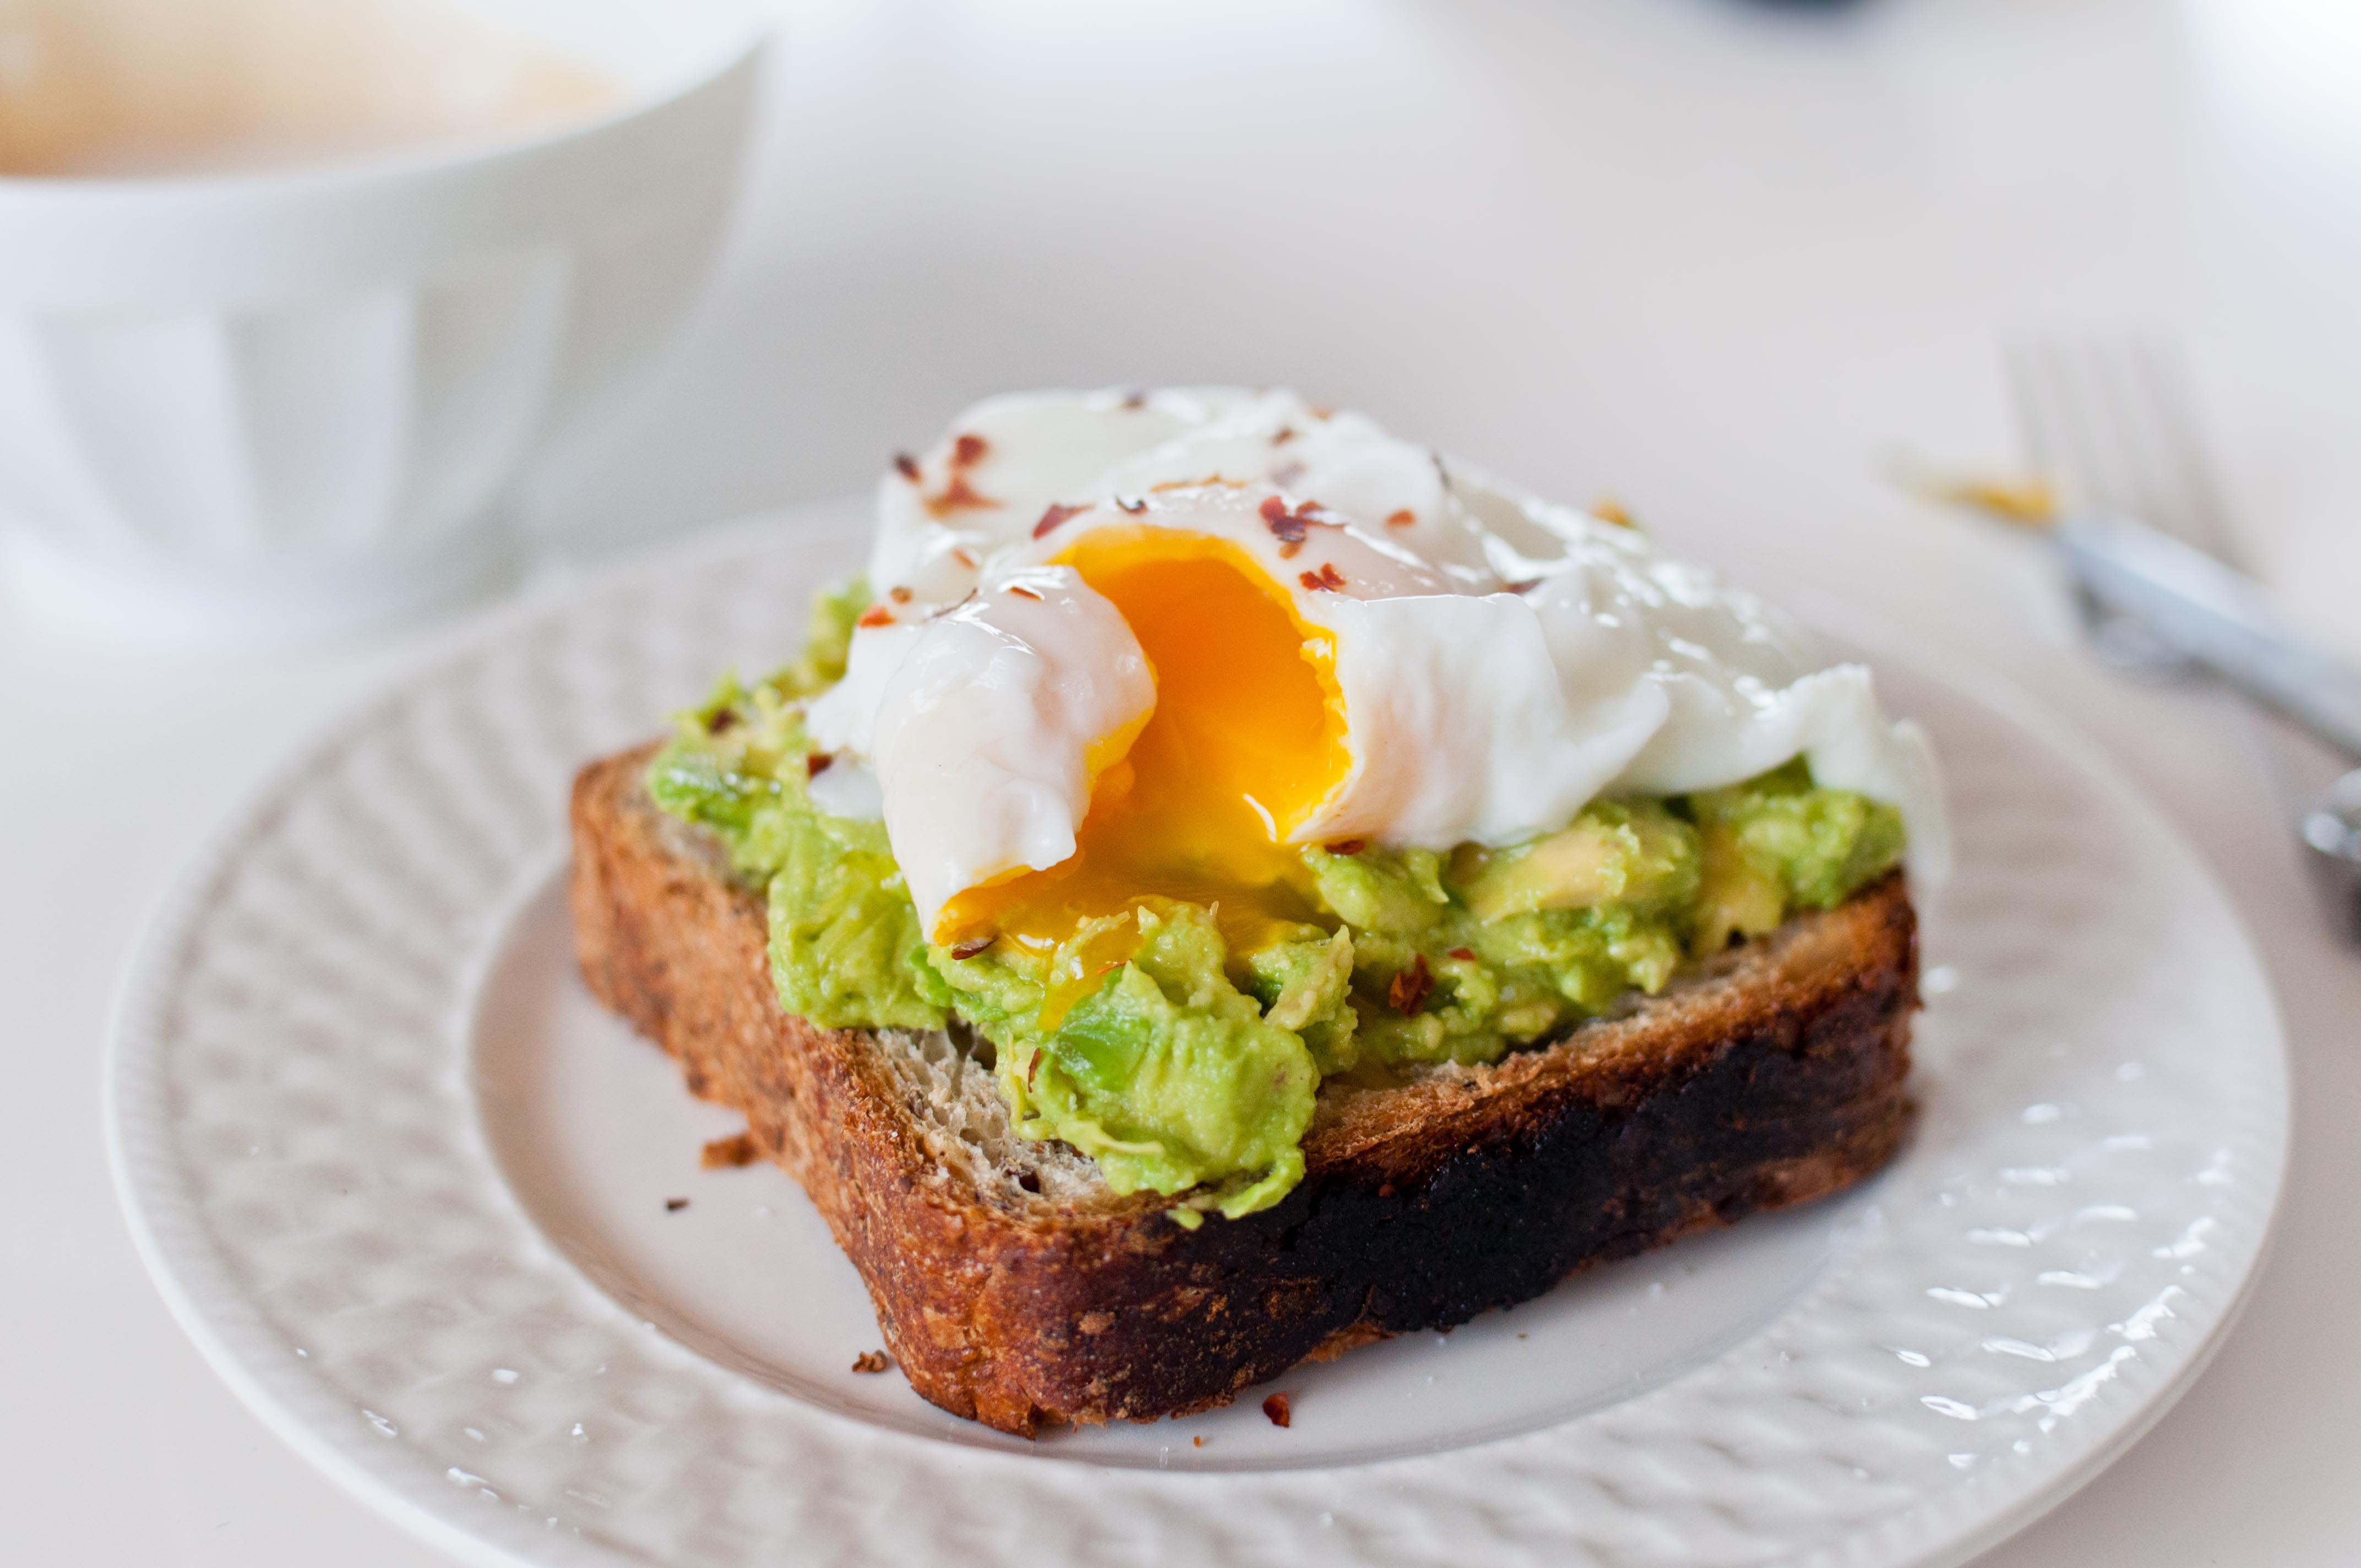 Brunching at Home: Avocado Toast, Berries and Yogurt | Sometimes I ...